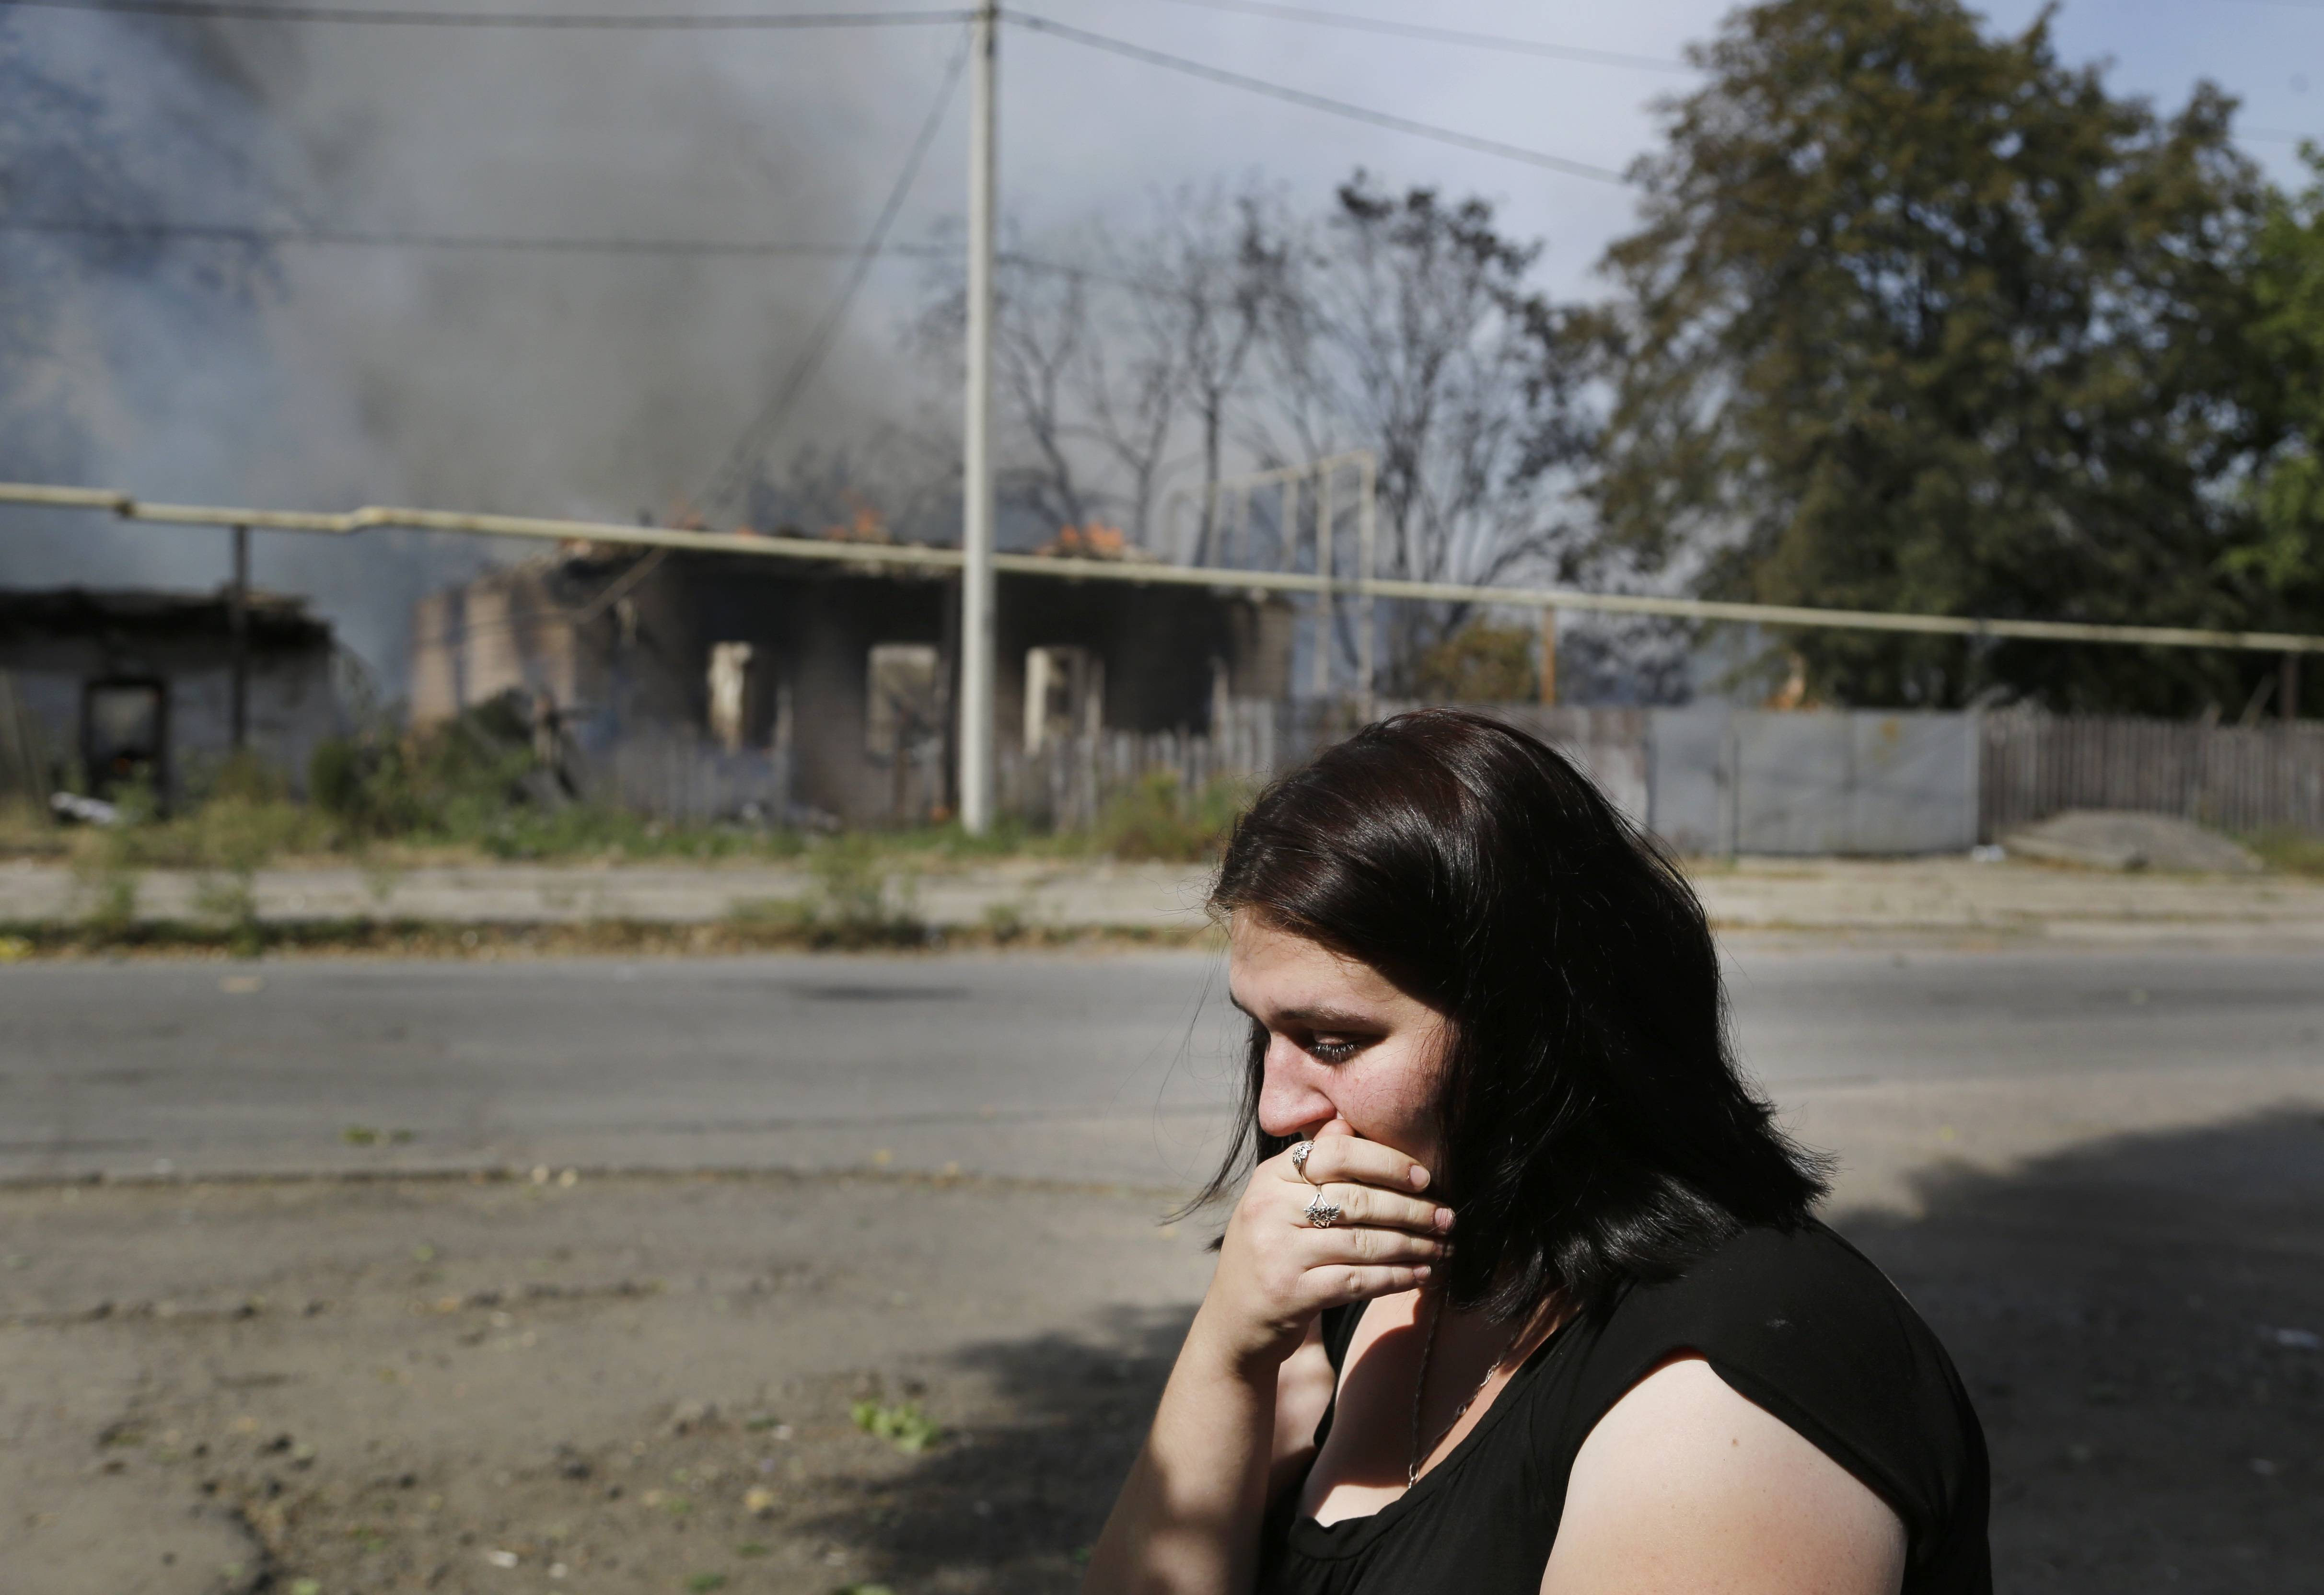 Ukraine shelling claims lives, sets houses ablaze